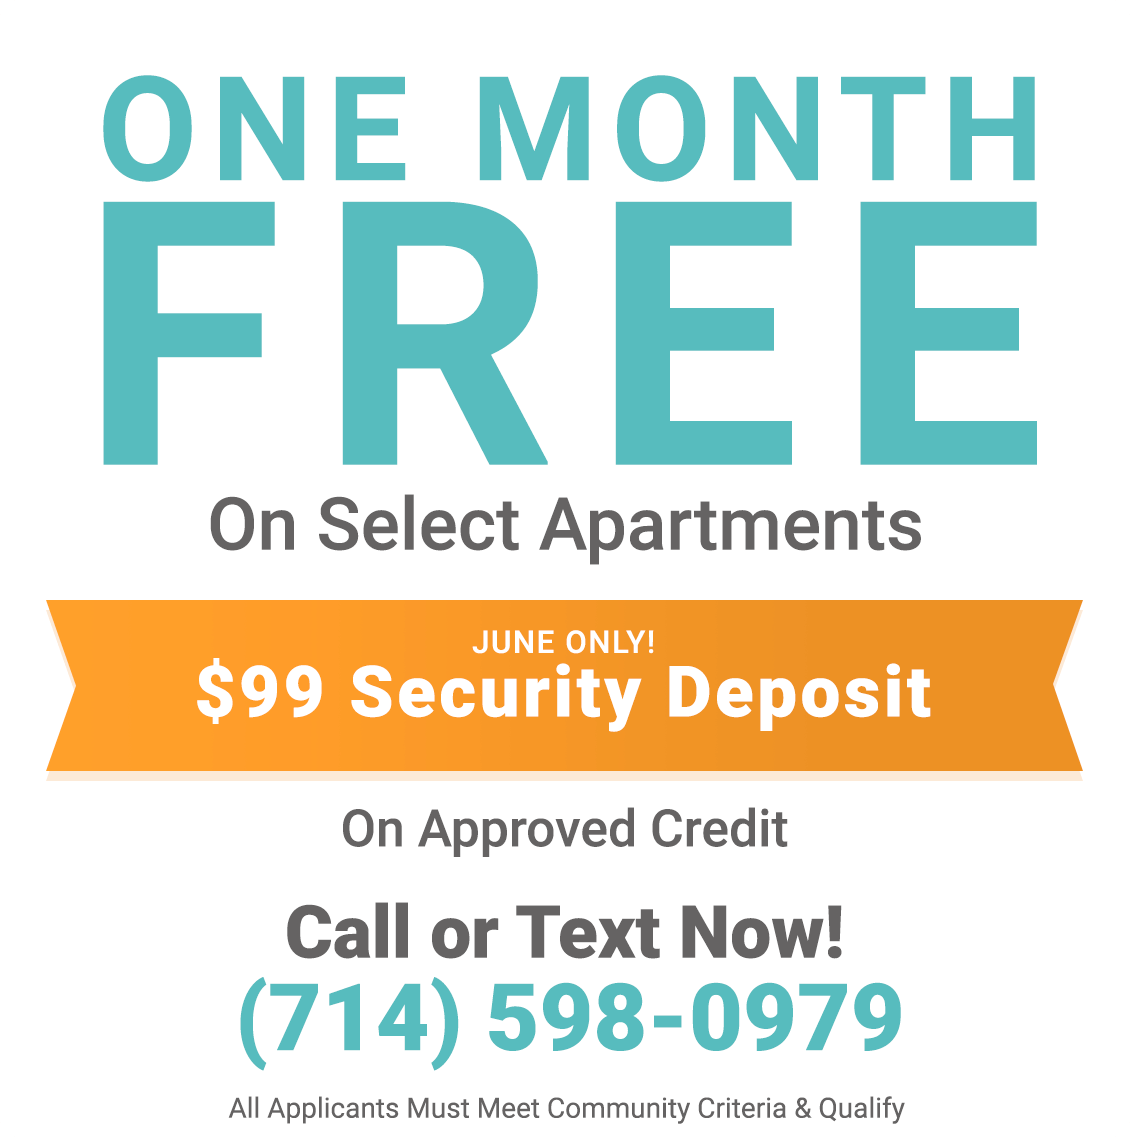 One Month Free on Select Apartments. $99 Security Deposit June Only on Approved Credit